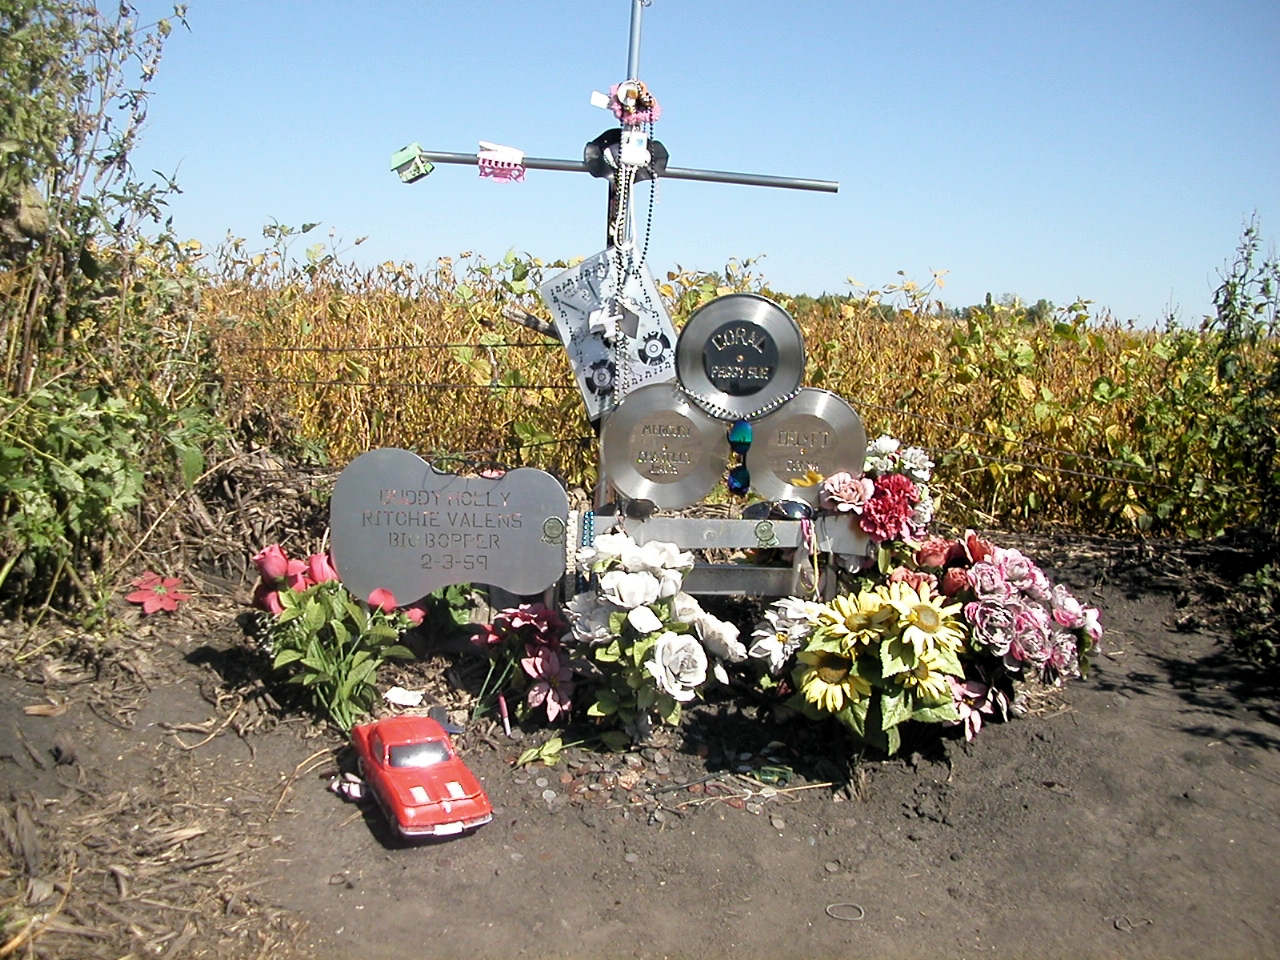 Monument to Buddy Holly, Ritchie Valens and J.P. Richardson, located approximately eight miles north of Clear Lake, Iowa. The small memorial is located at the place the plane came to rest. Four trees were also planted along the fence row in 1999, one for each performer and the pilot. Photo taken on September 16, 2003.